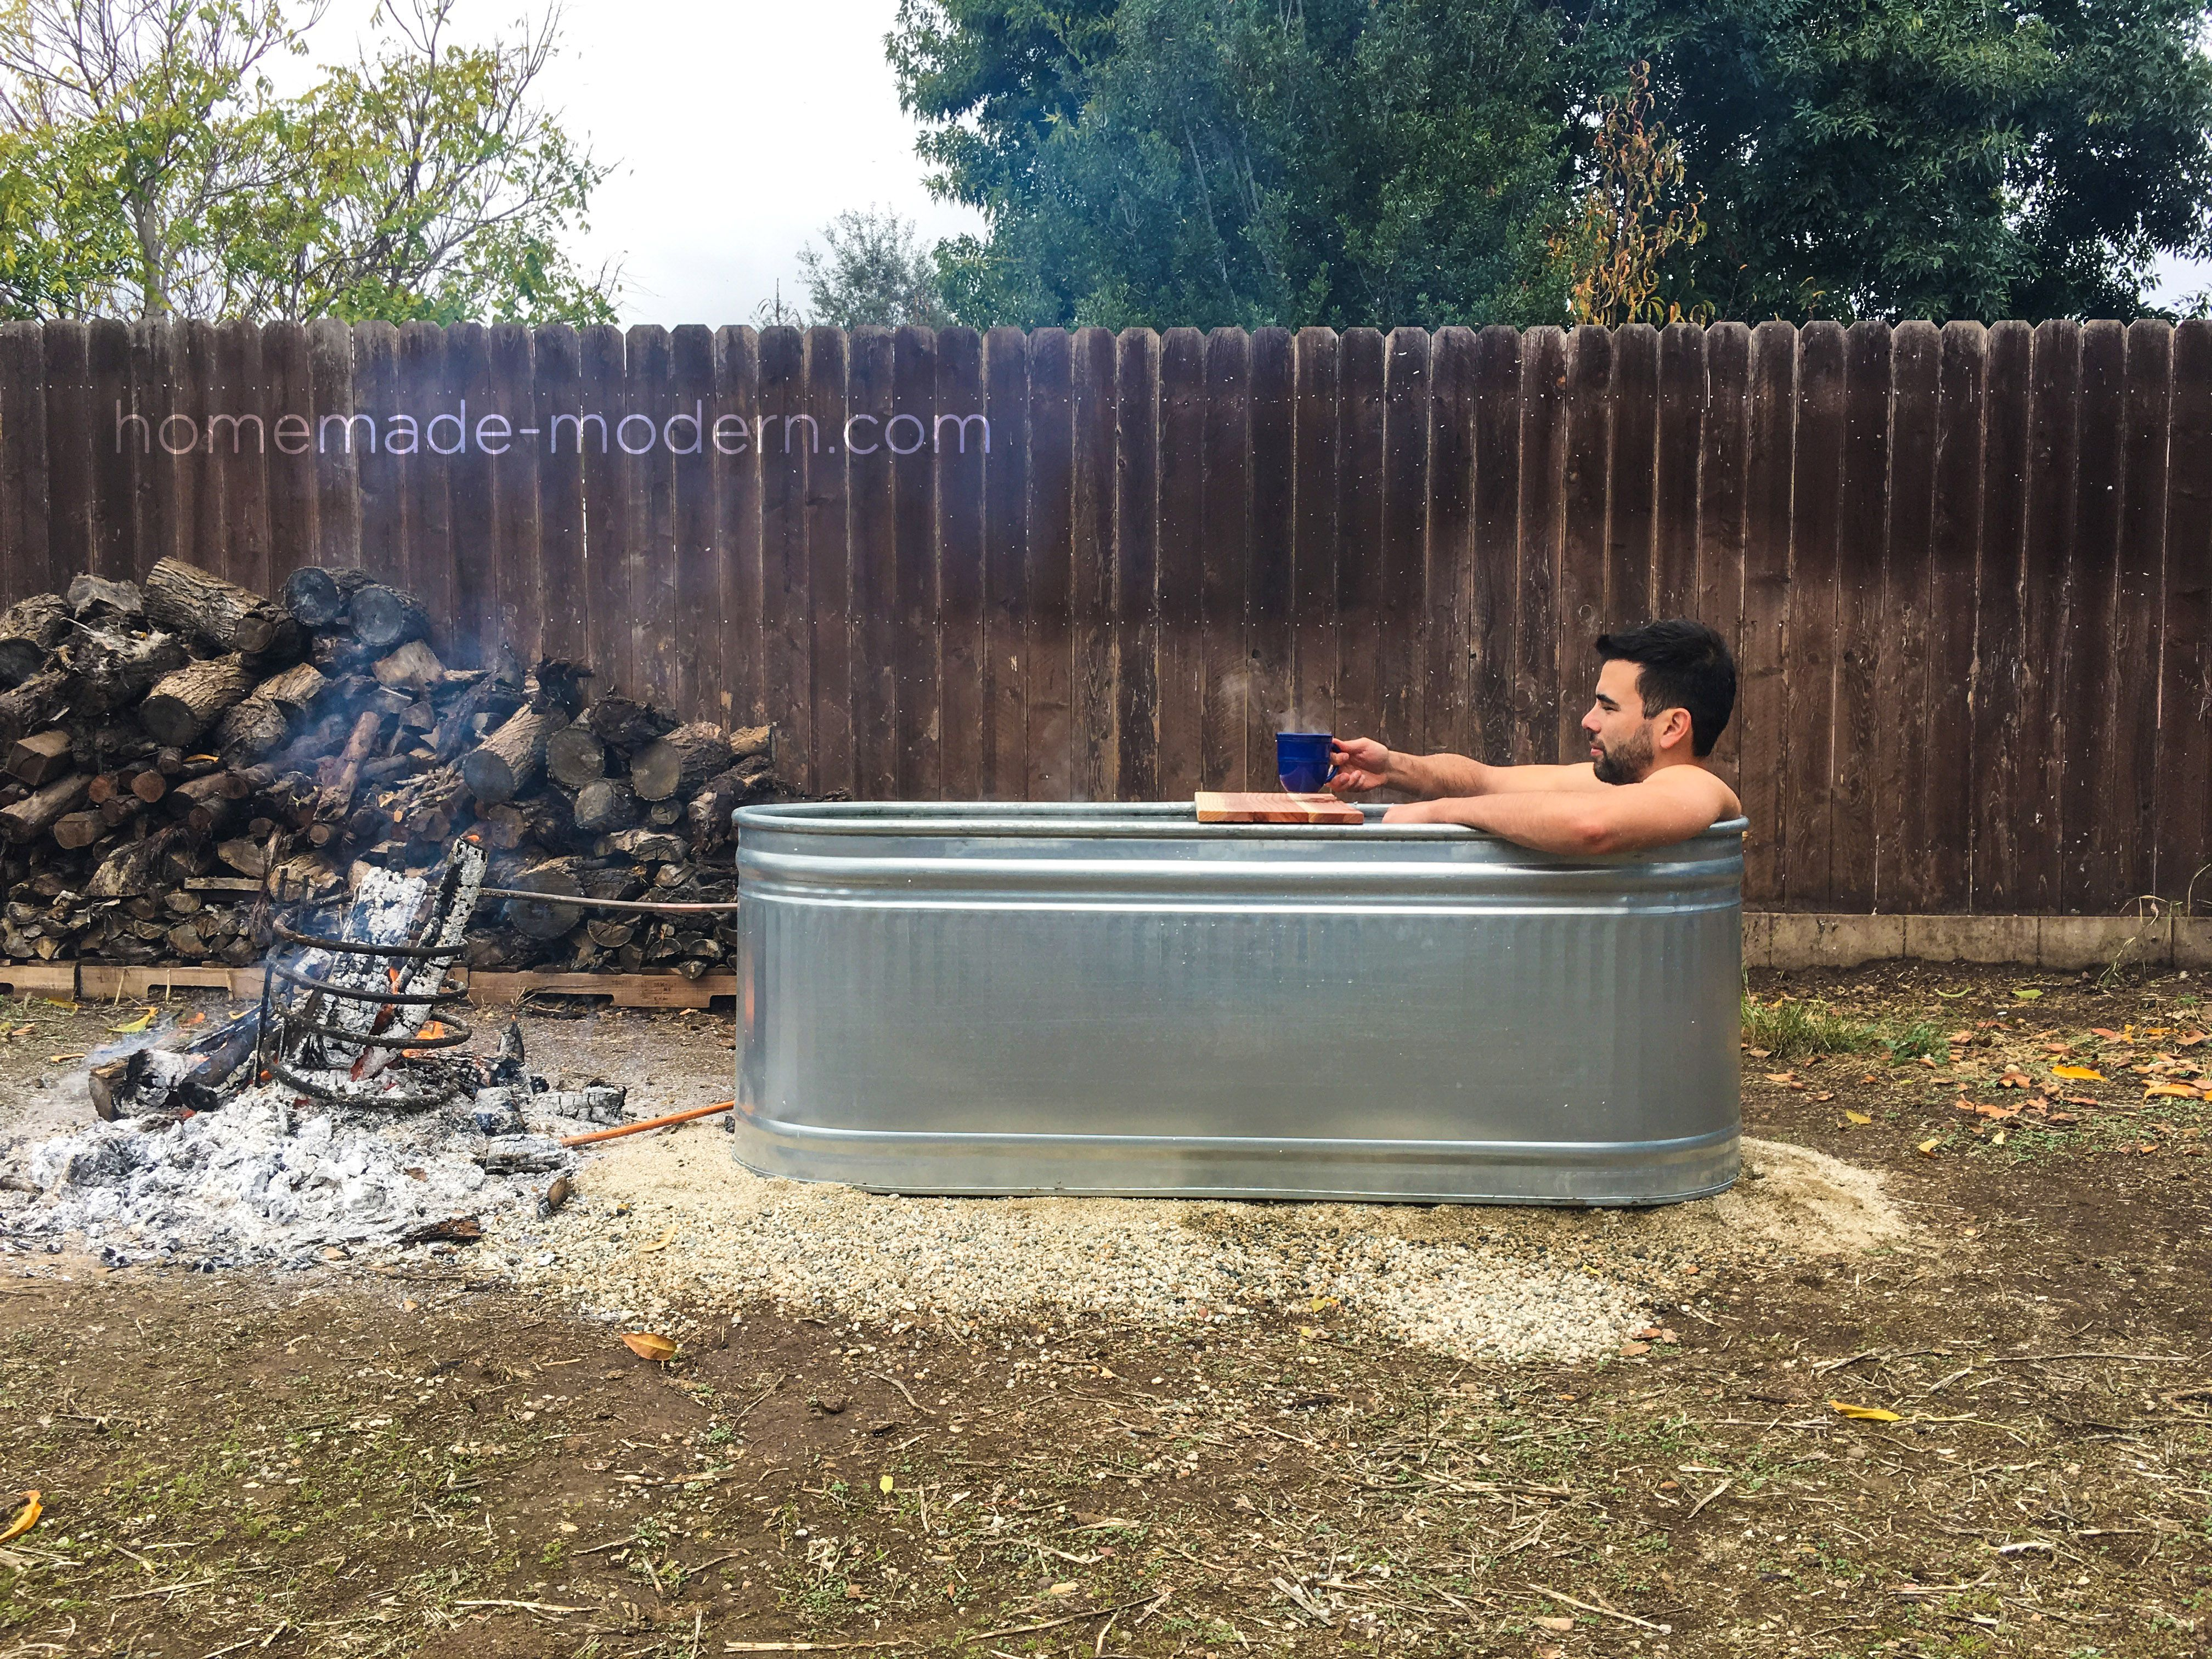 This Diy Wood Fired Hot Tub Is Made From A Stock Tank And